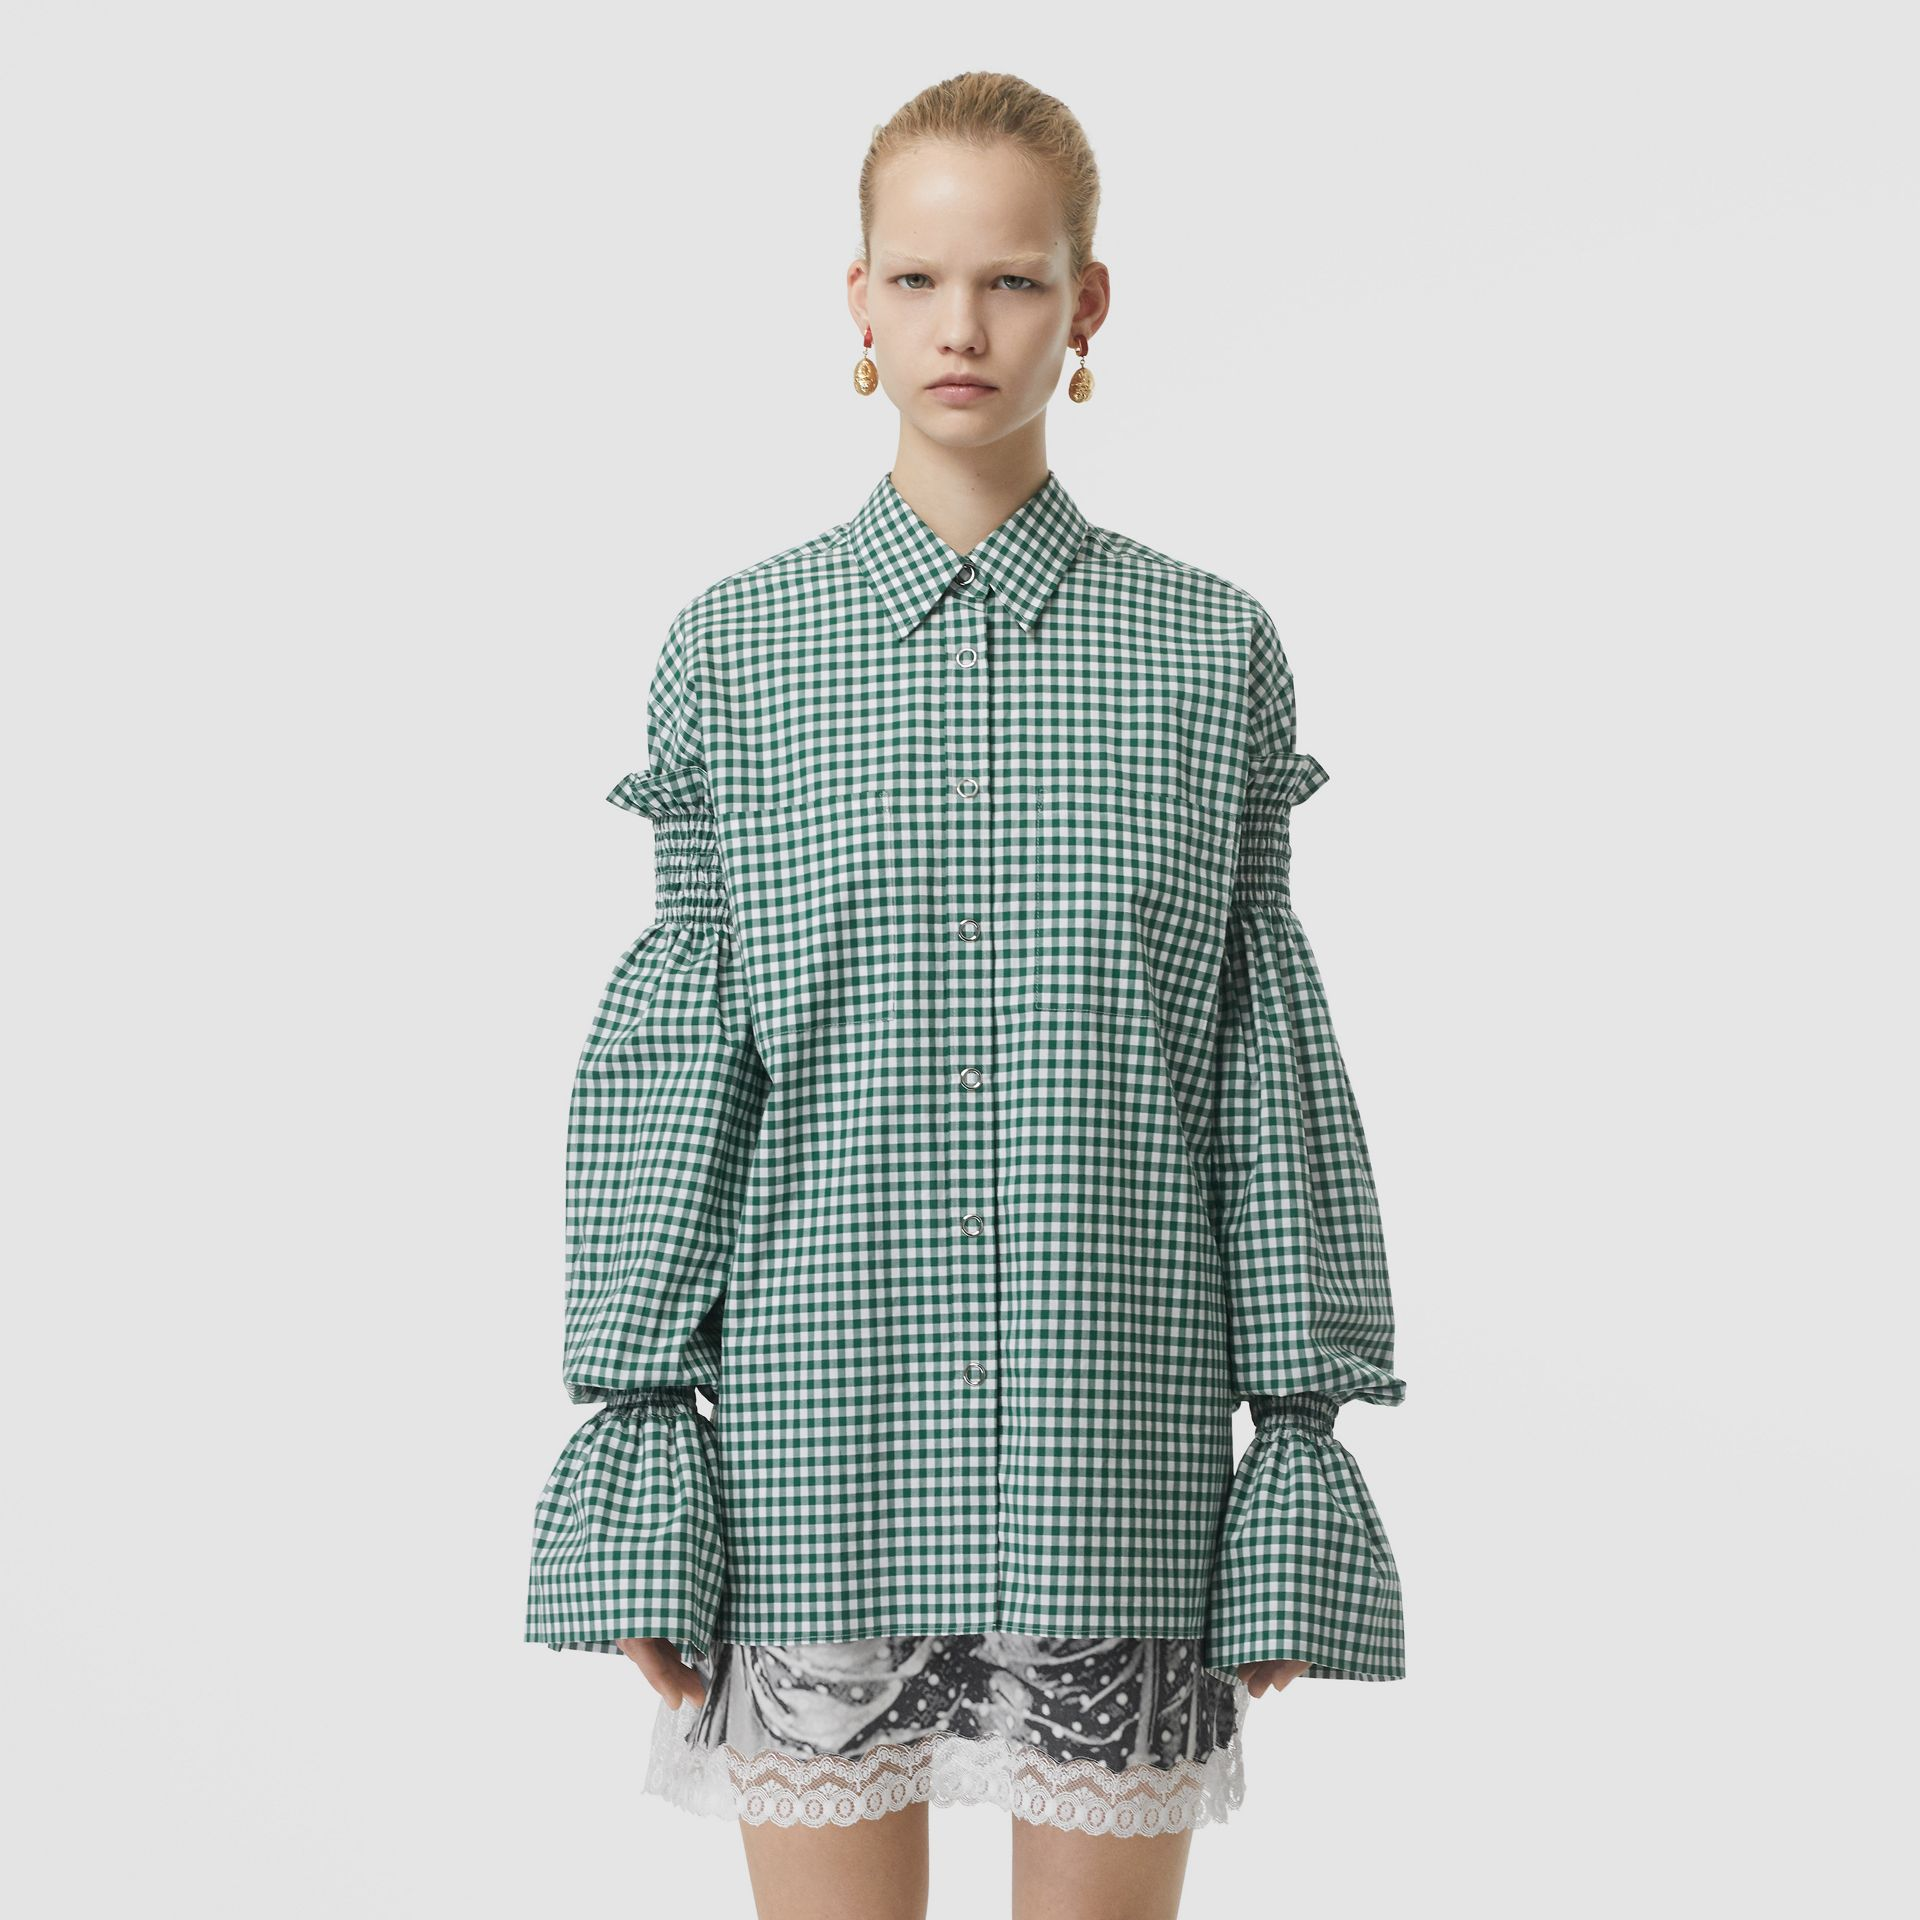 Gathered Sleeve Gingham Cotton Shirt in White/green - Women | Burberry - gallery image 5